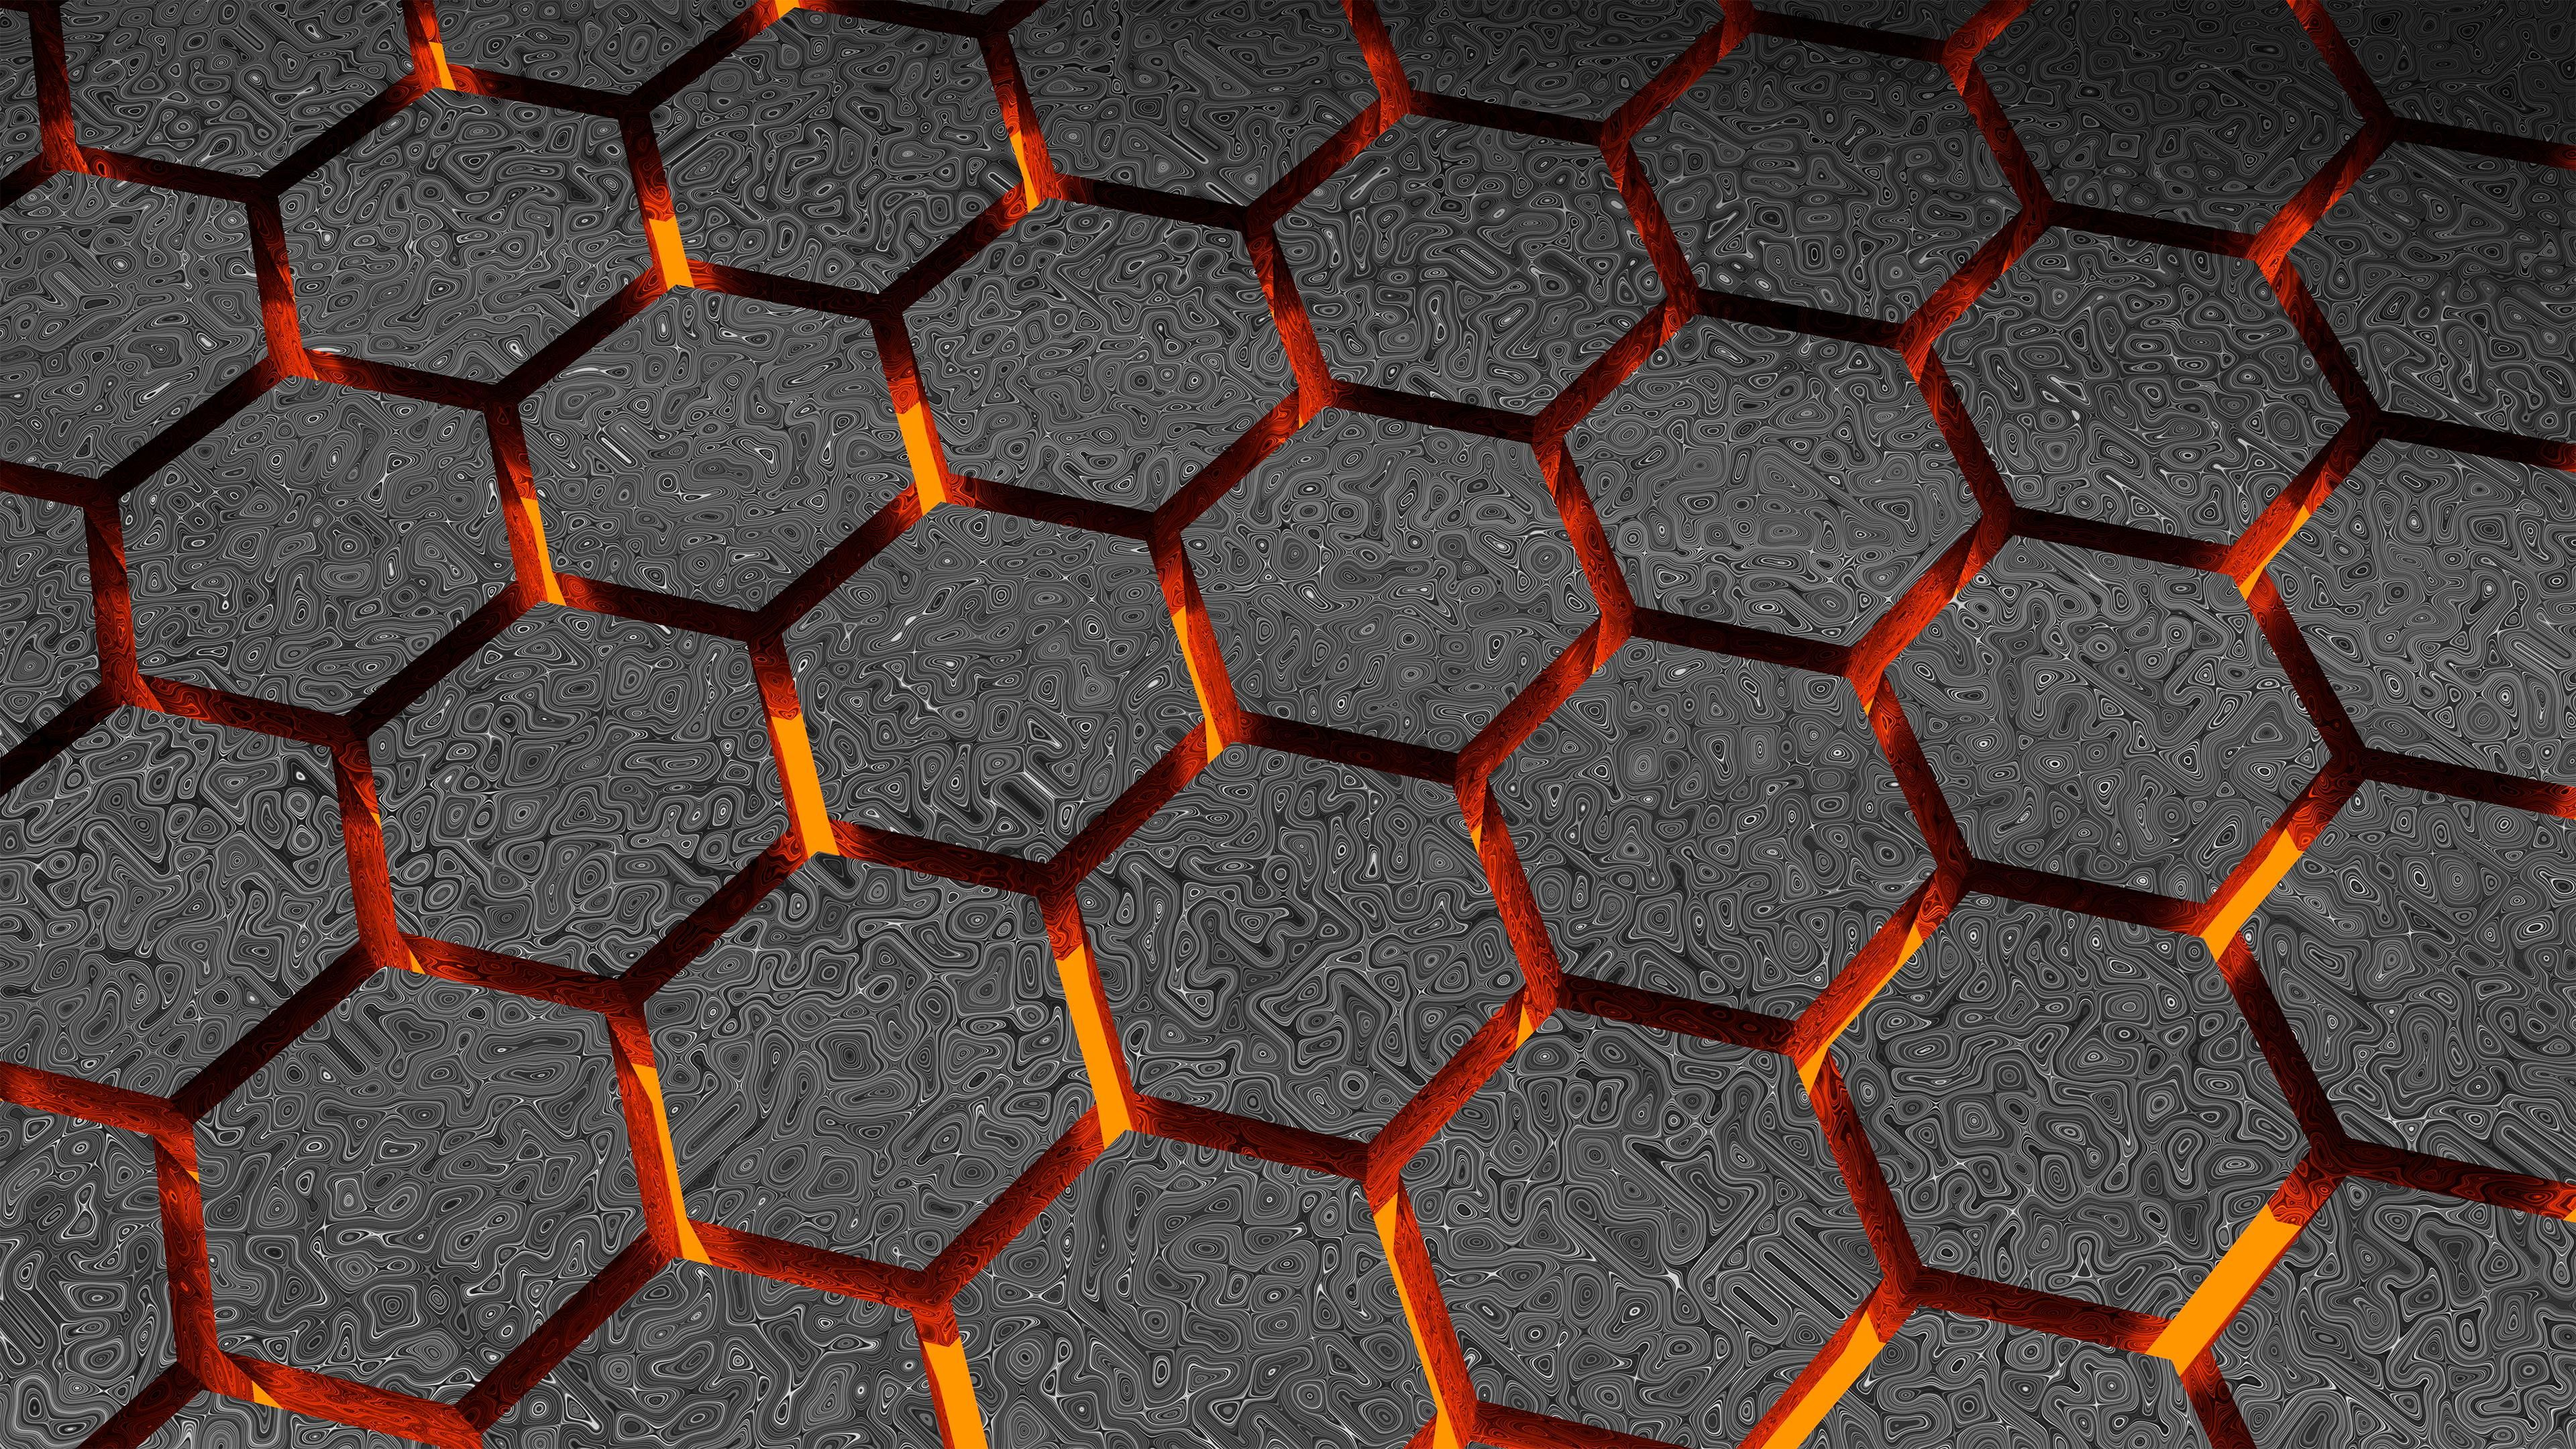 3d Hexagon Abstract Hd 4k Lava 4k Wallpaper Hdwallpaper Desktop In 2020 Geometric Digital Wallpaper Digital Wallpaper Cartoon Wallpaper Hd